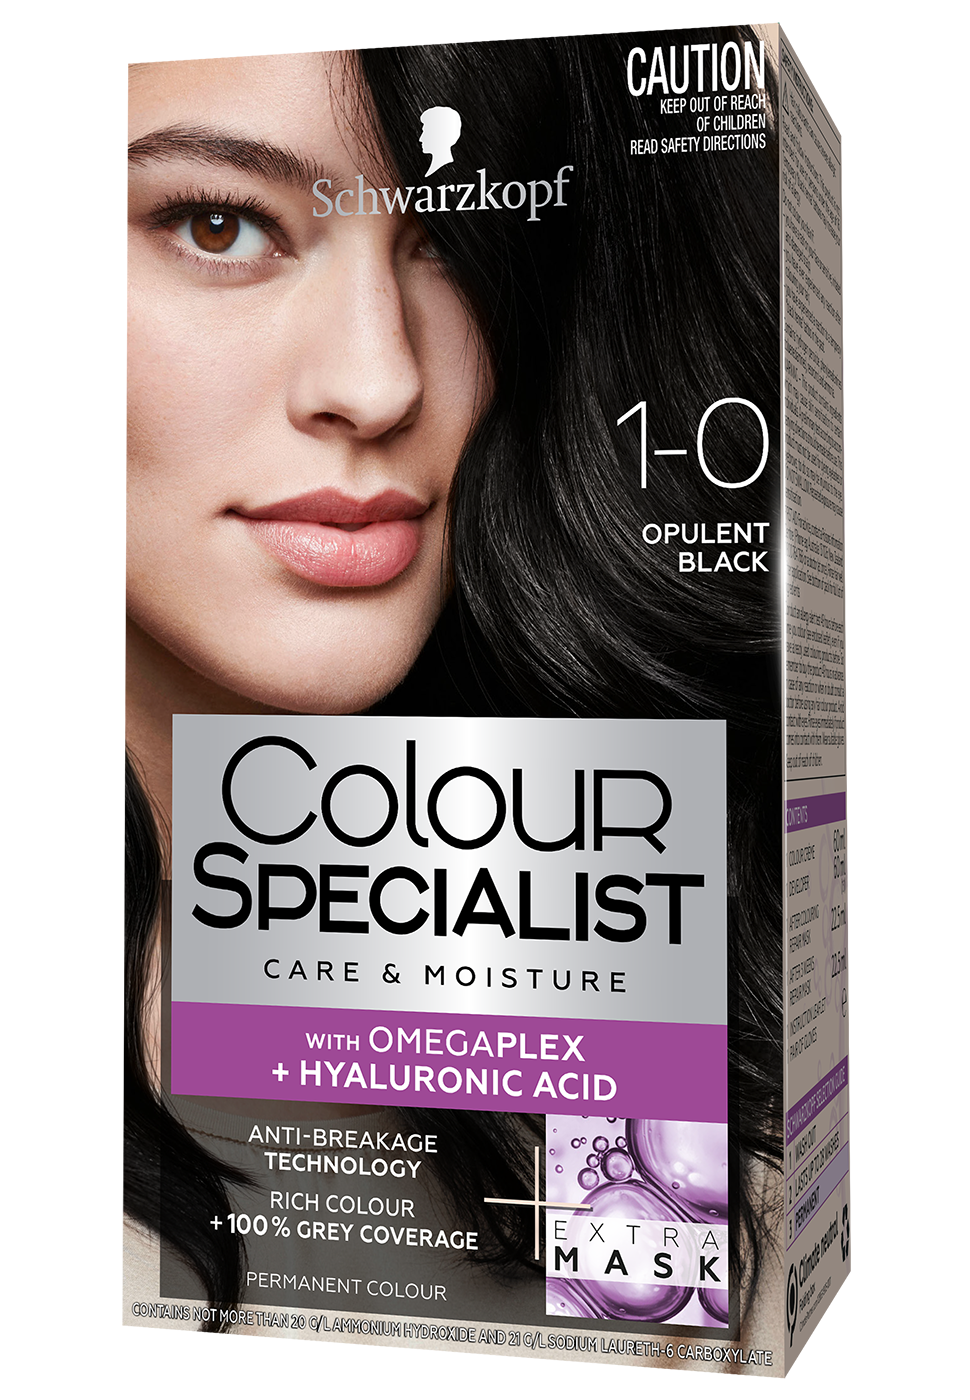 Colour Specialist 1-1 Opulent Black 3D LF_970x1400